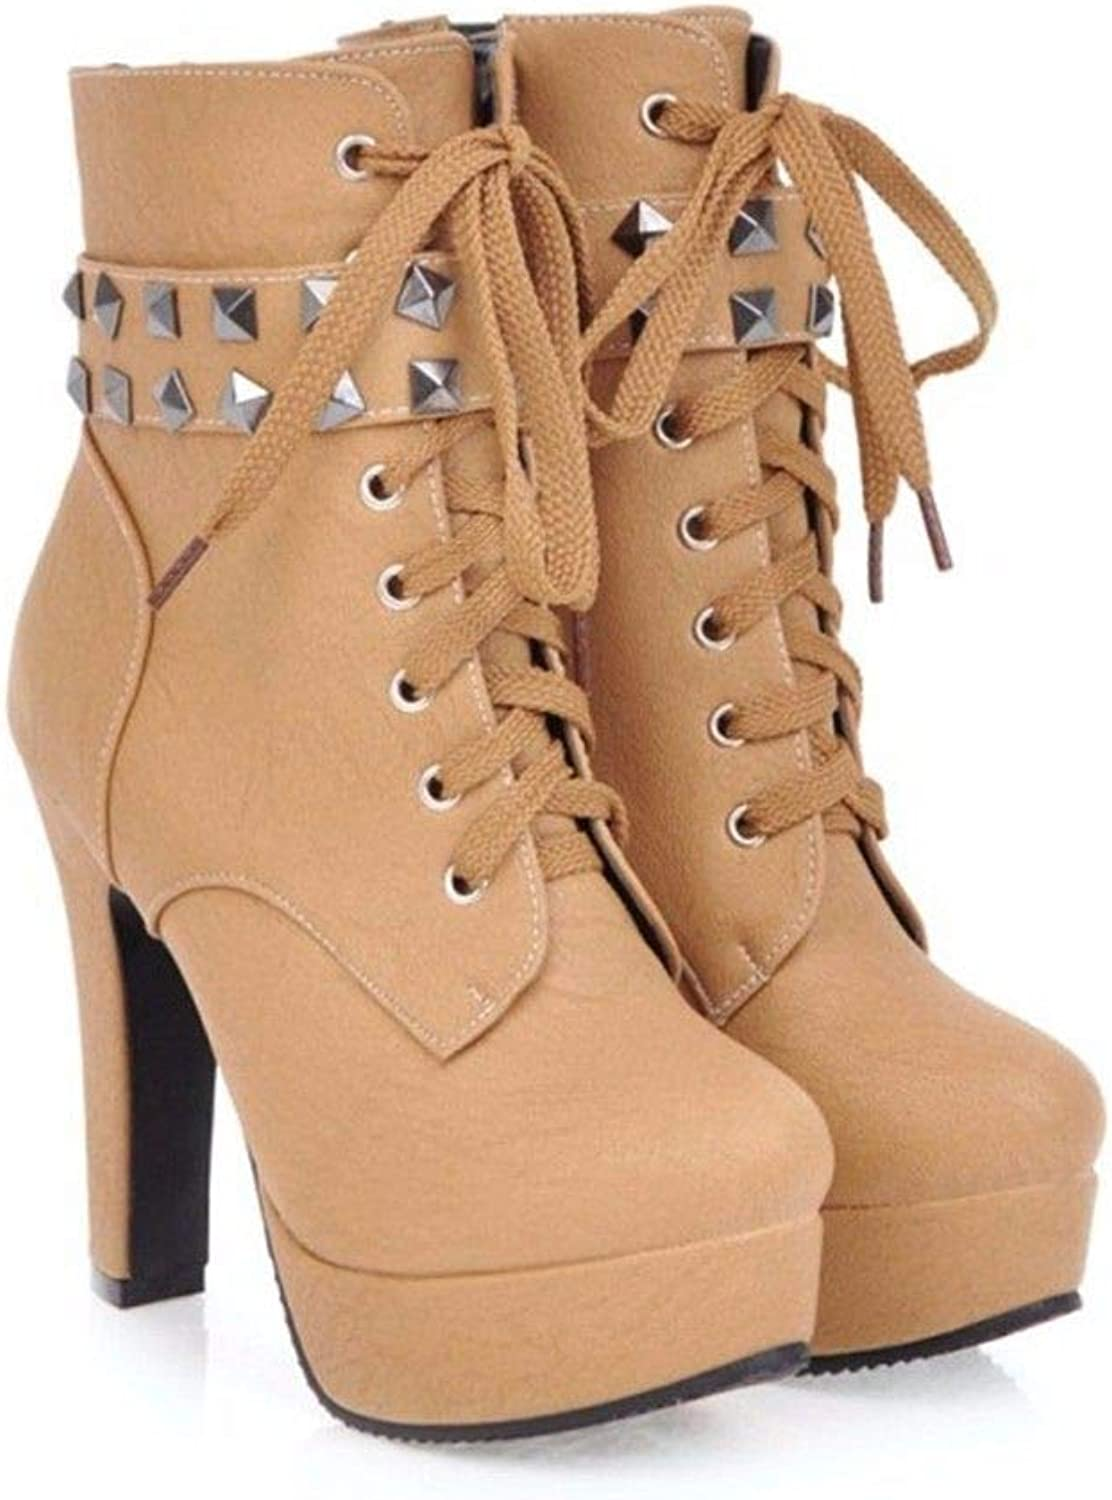 Europe Boots Small Round Head Heels with coarse Rivet Front tie Code Boots